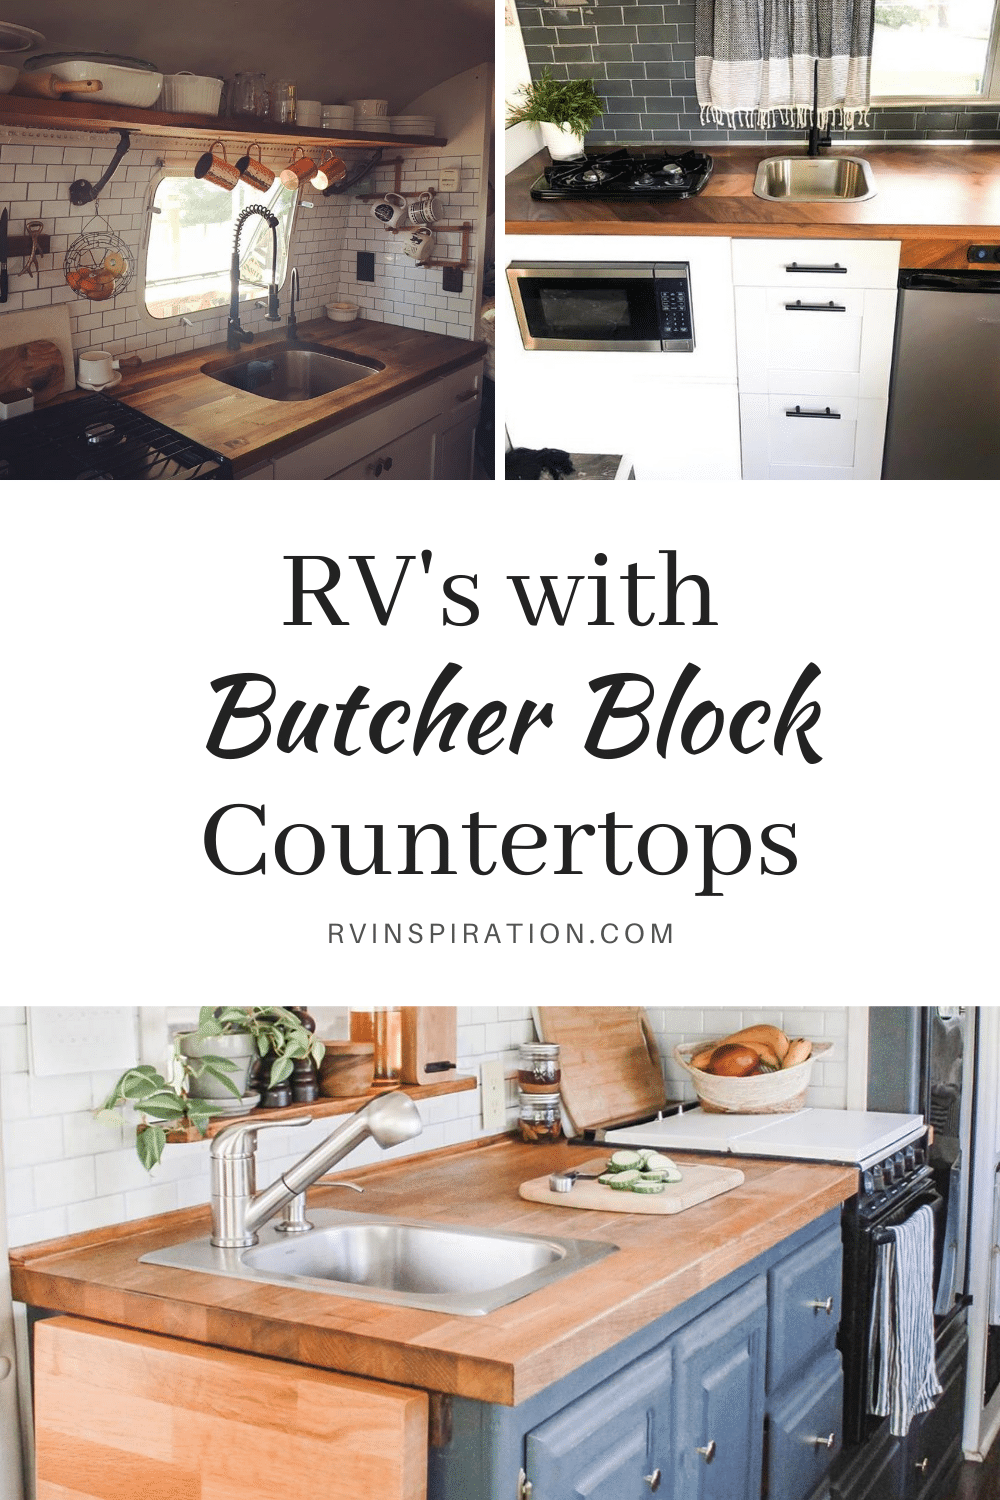 Update your RV kitchen with a beautiful butcher block countertop. #RVrenovation #RVkitchen #RVmakeover #RVcountertop